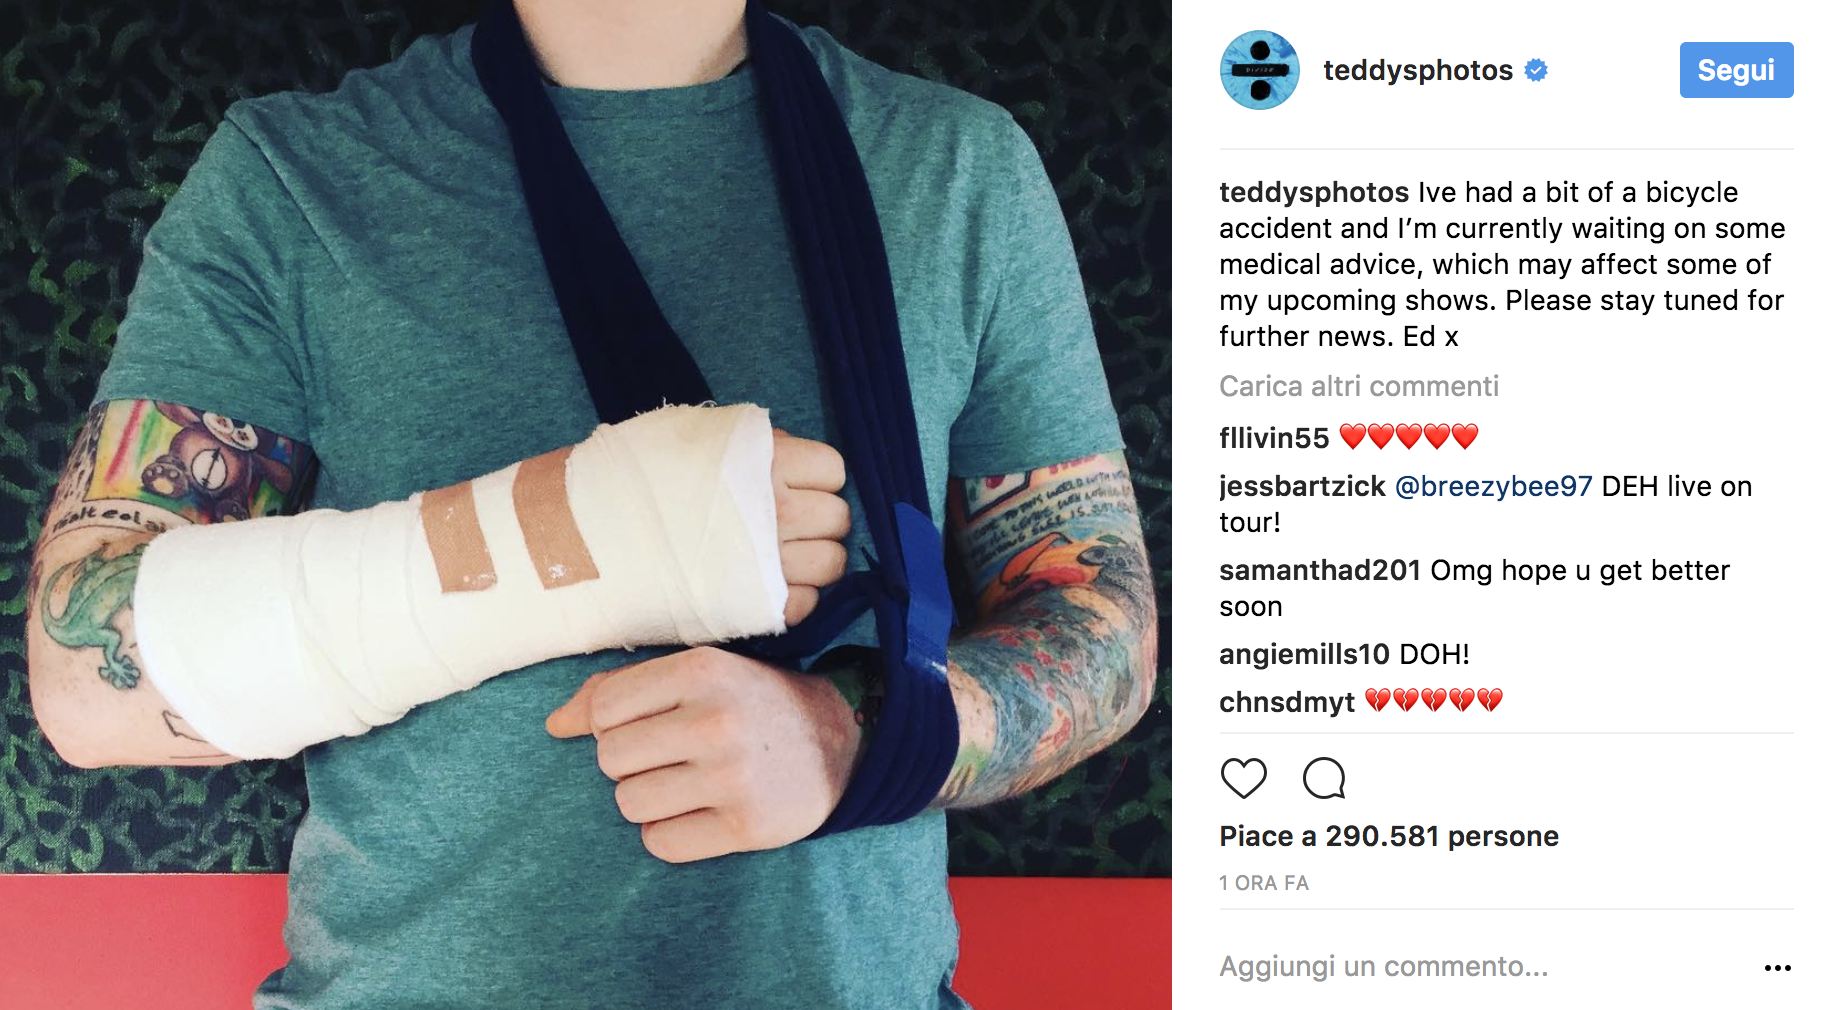 Incidente per Ed Sheeran: tour a rischio?